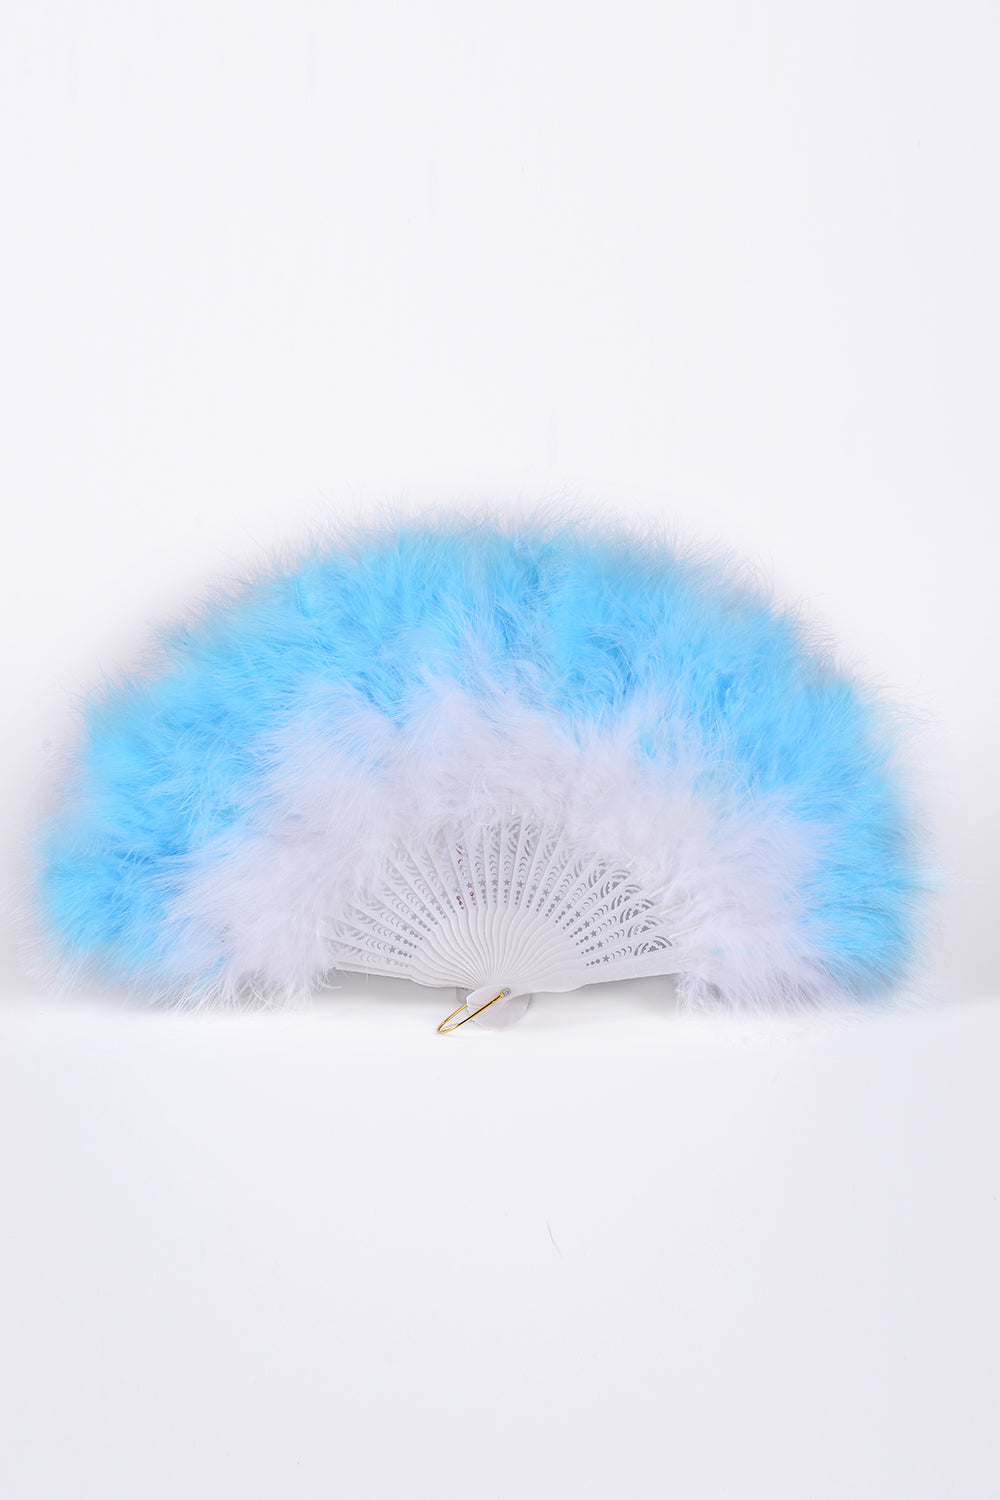 Big Fuzzy Fur Fan - Baby Blue